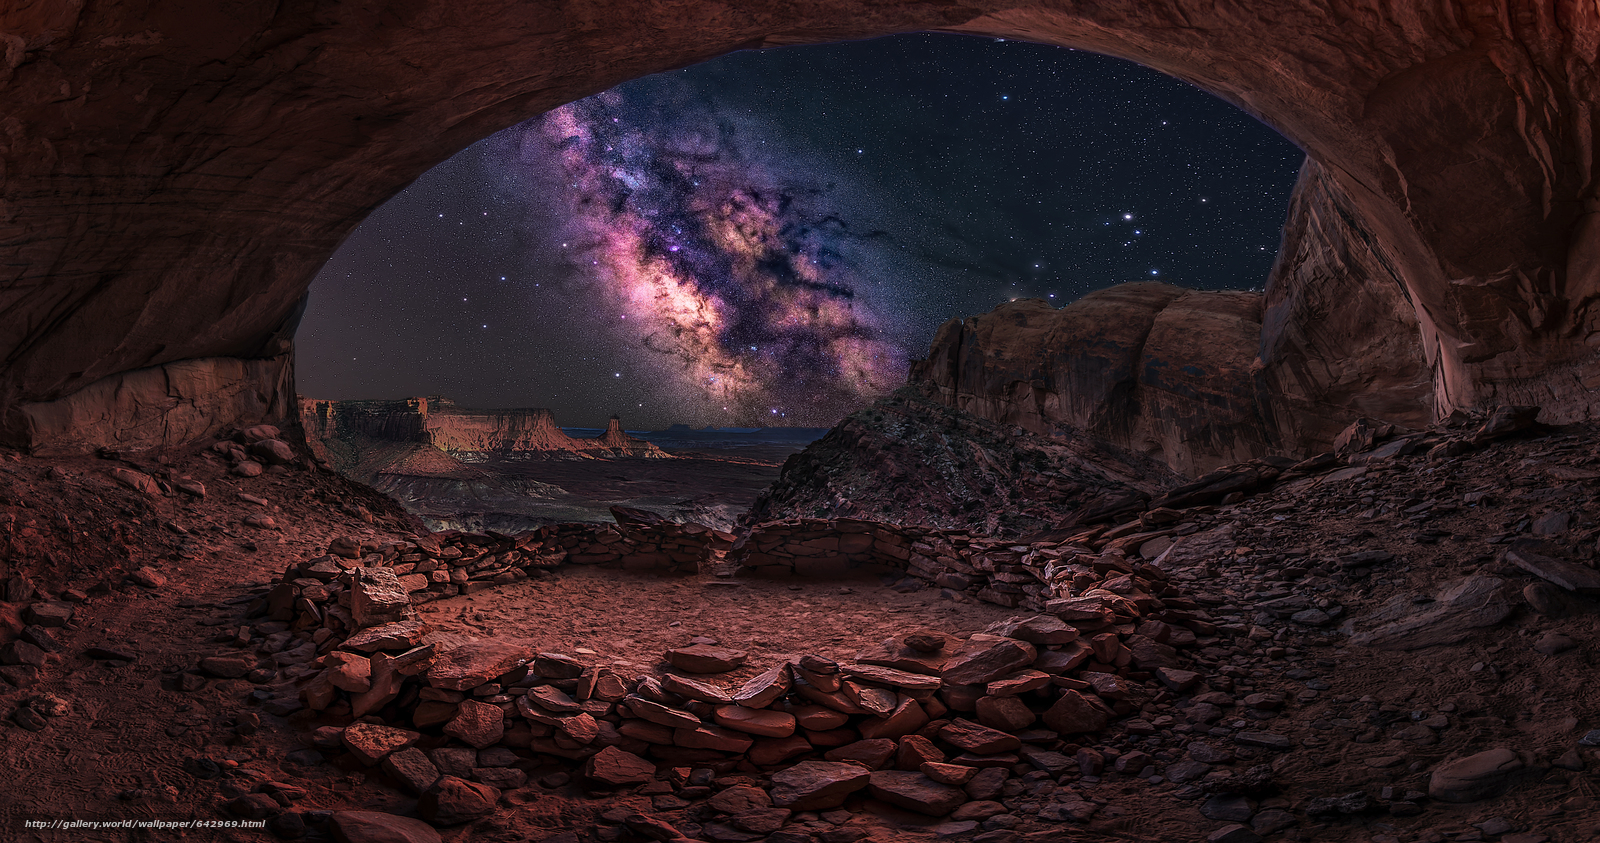 False Kiva, Canyonlands, Milky Way, Mountains, Rocks, arch, night, shine, landscape